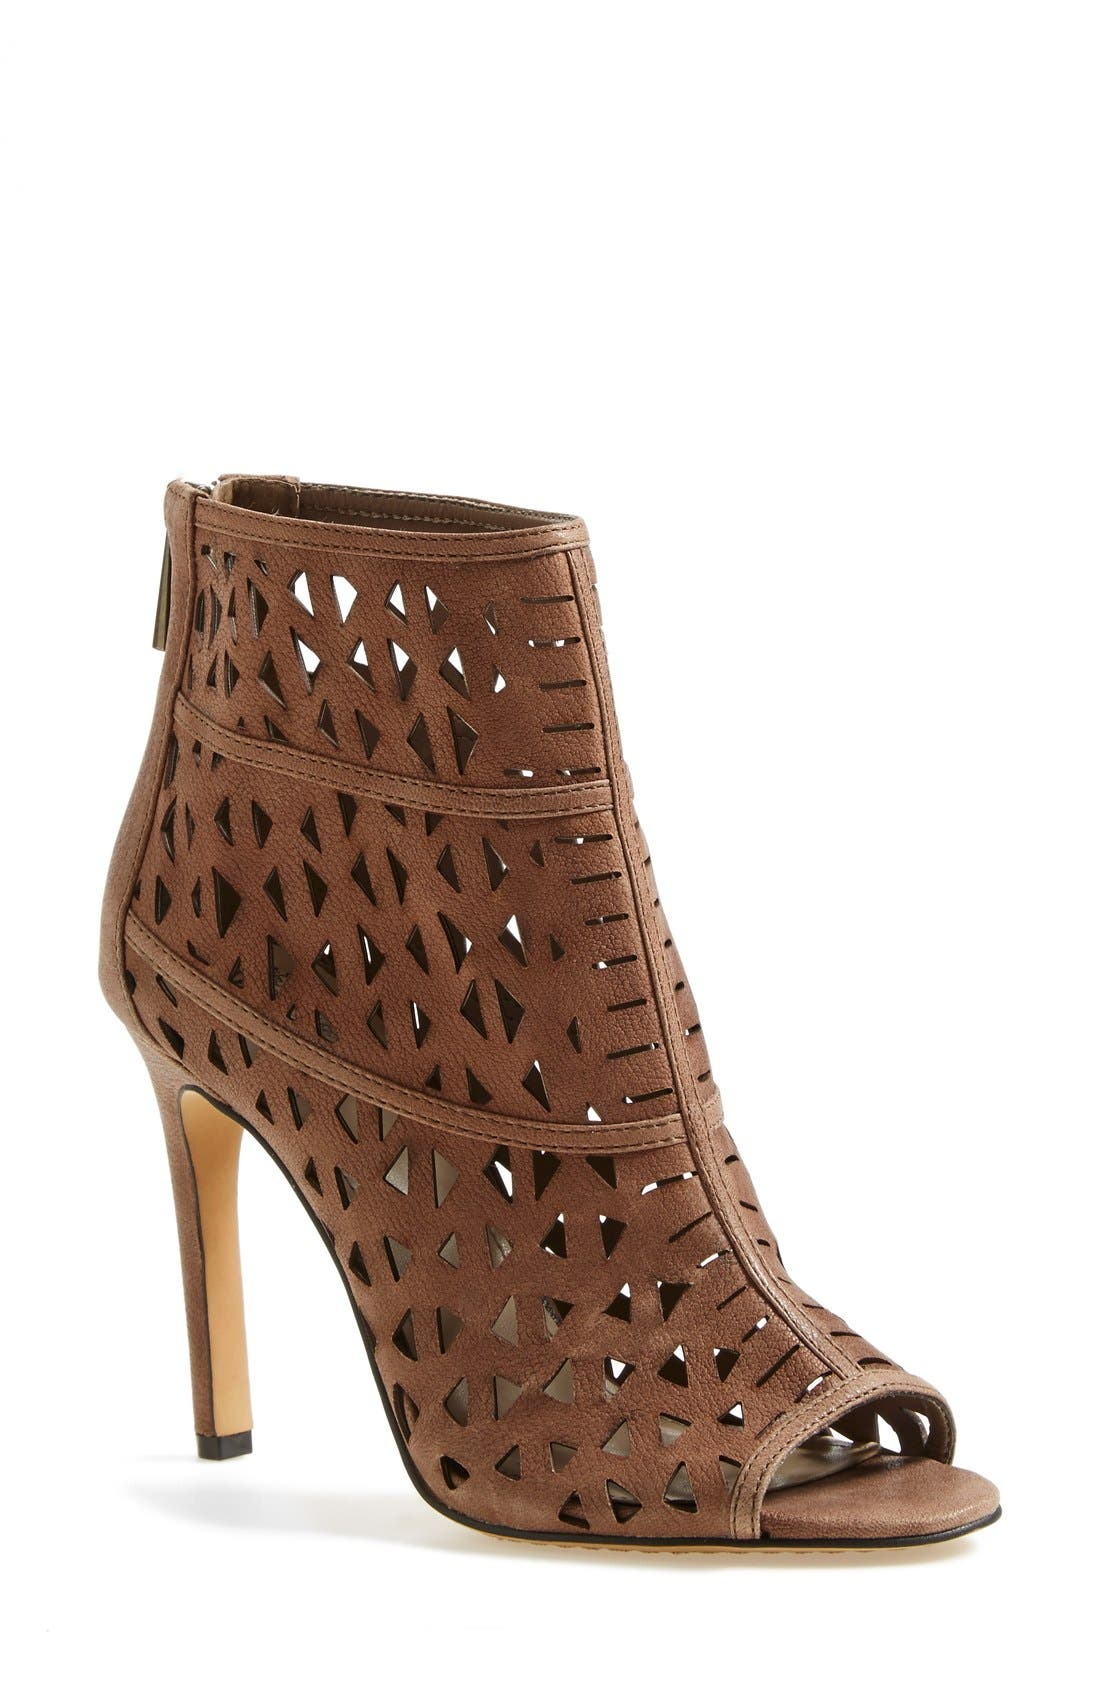 Main Image - Vince Camuto 'Kachina' Open Toe Bootie (Women) (Nordstrom Exclusive)